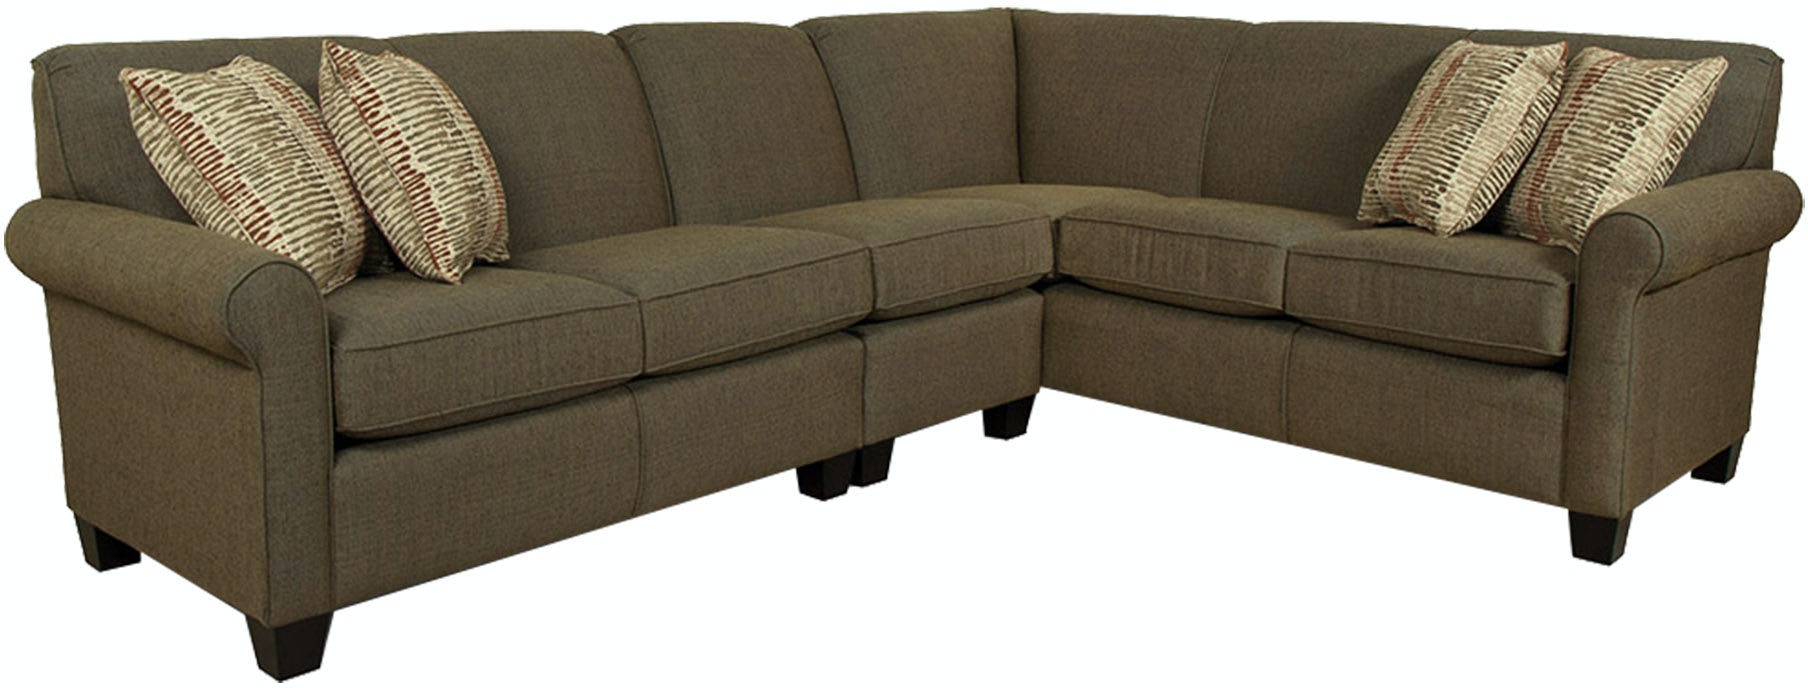 England Living Room Angie Sectional